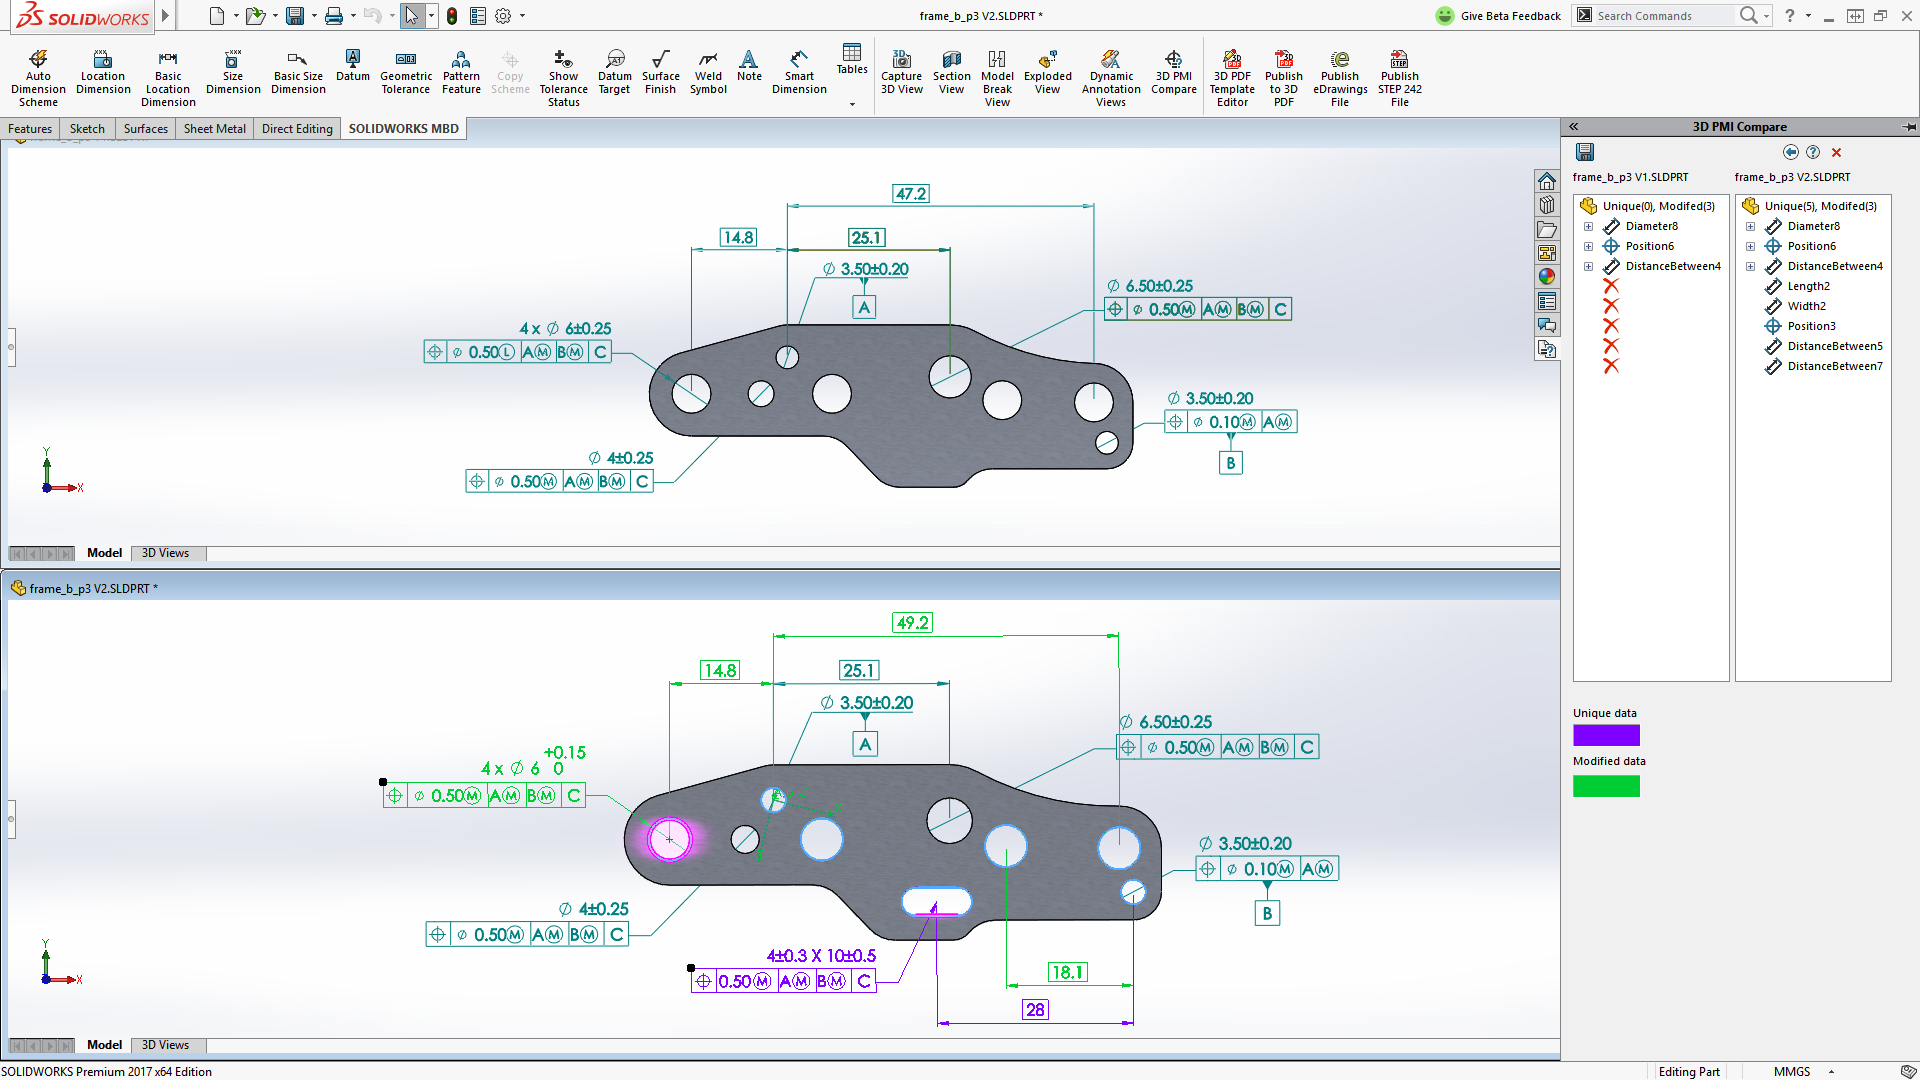 SOLIDWORKS MBD: Making 2D Orthographic Drawings Obsolete